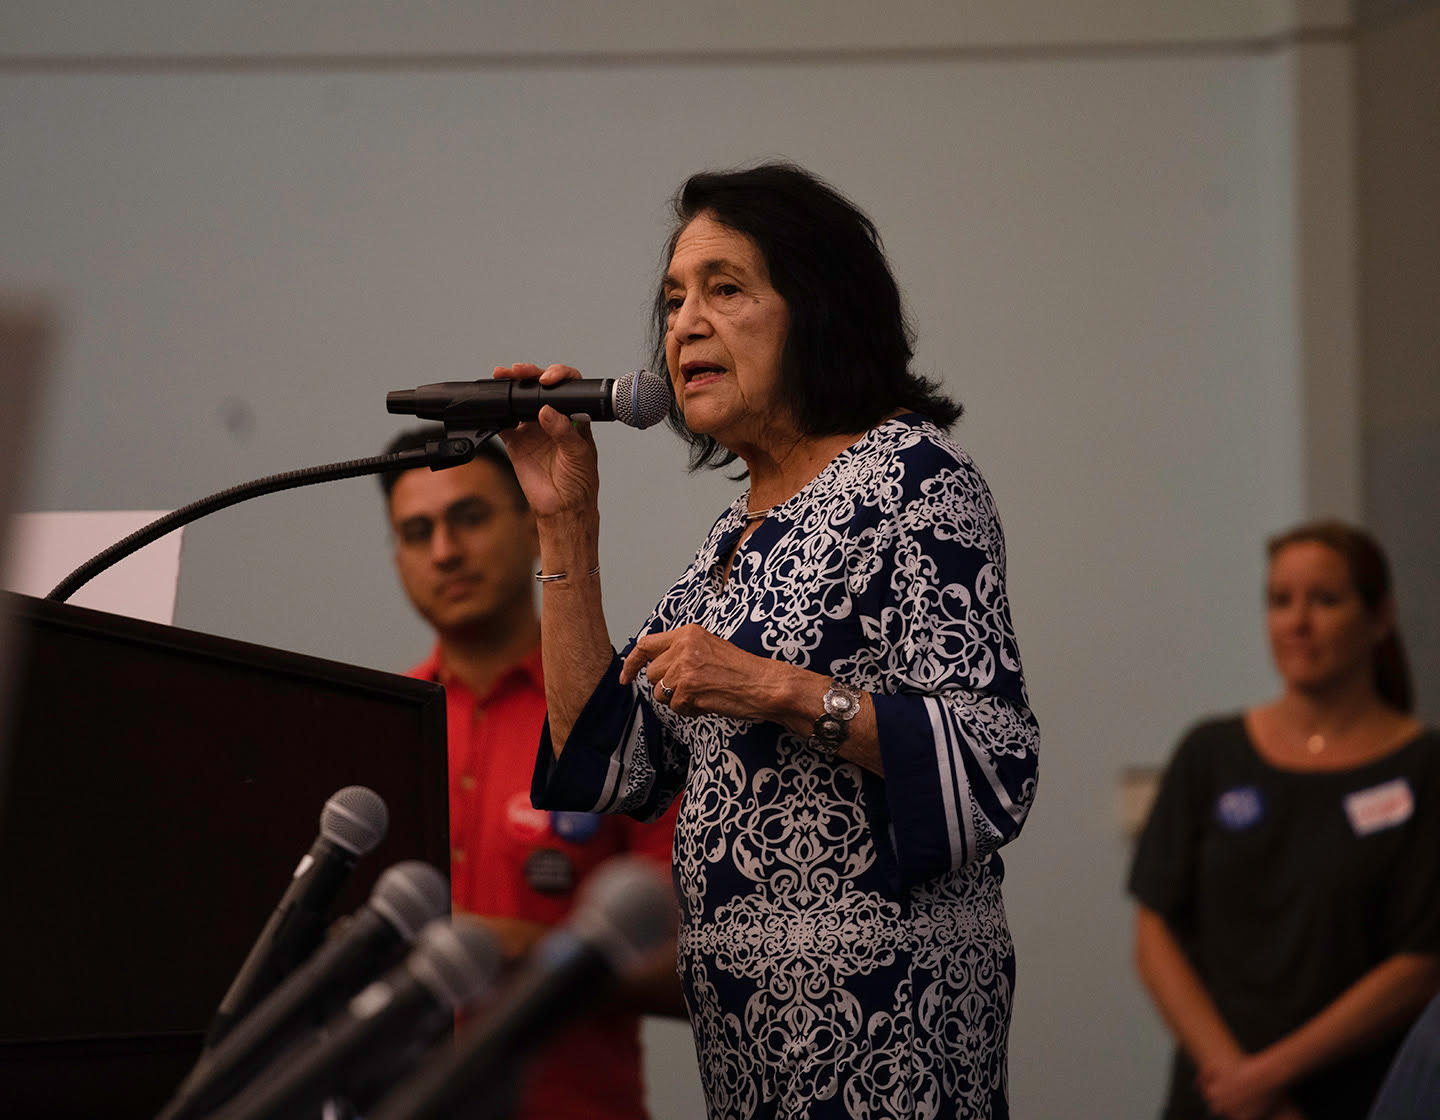 Dolores Huerta speaks last after the panel to discuss about the importance of the upcoming 2020 census and how it may affect Hispanics.